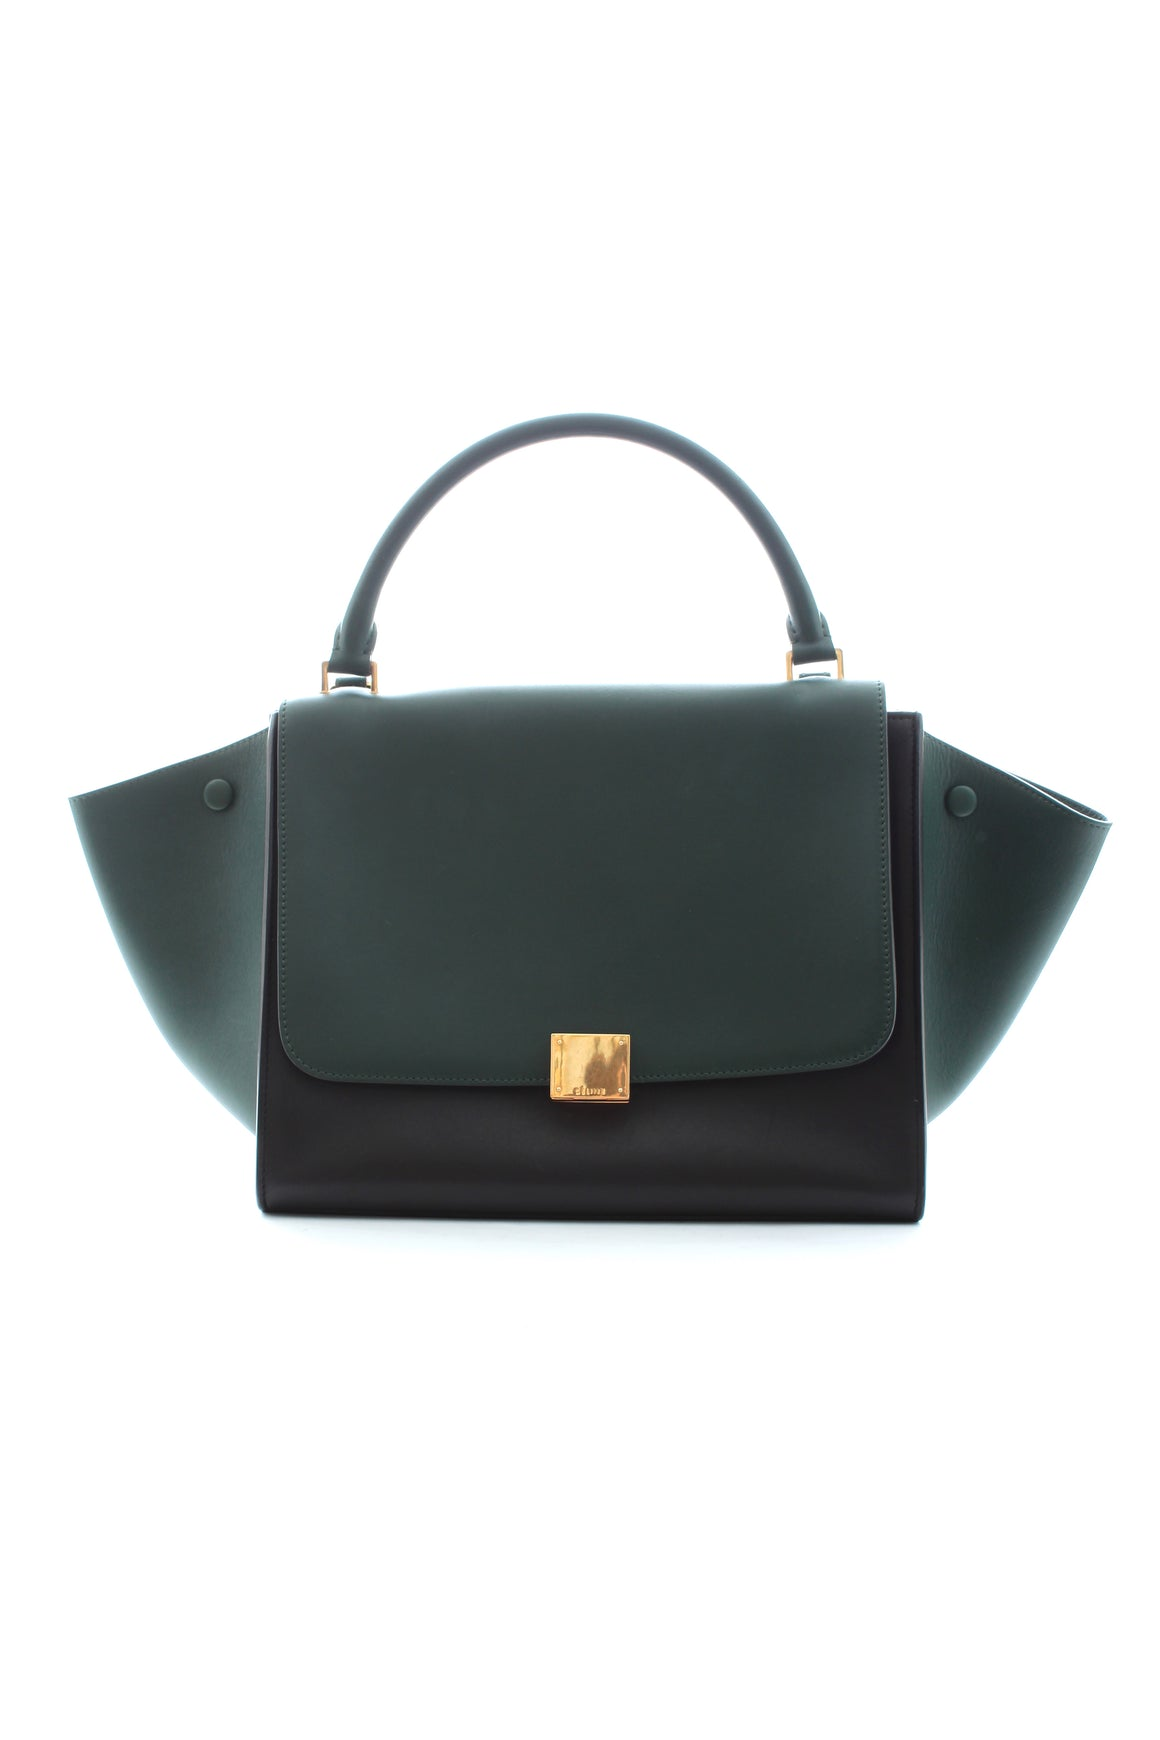 Céline Medium Trapeze Bag in Calfskin Leather